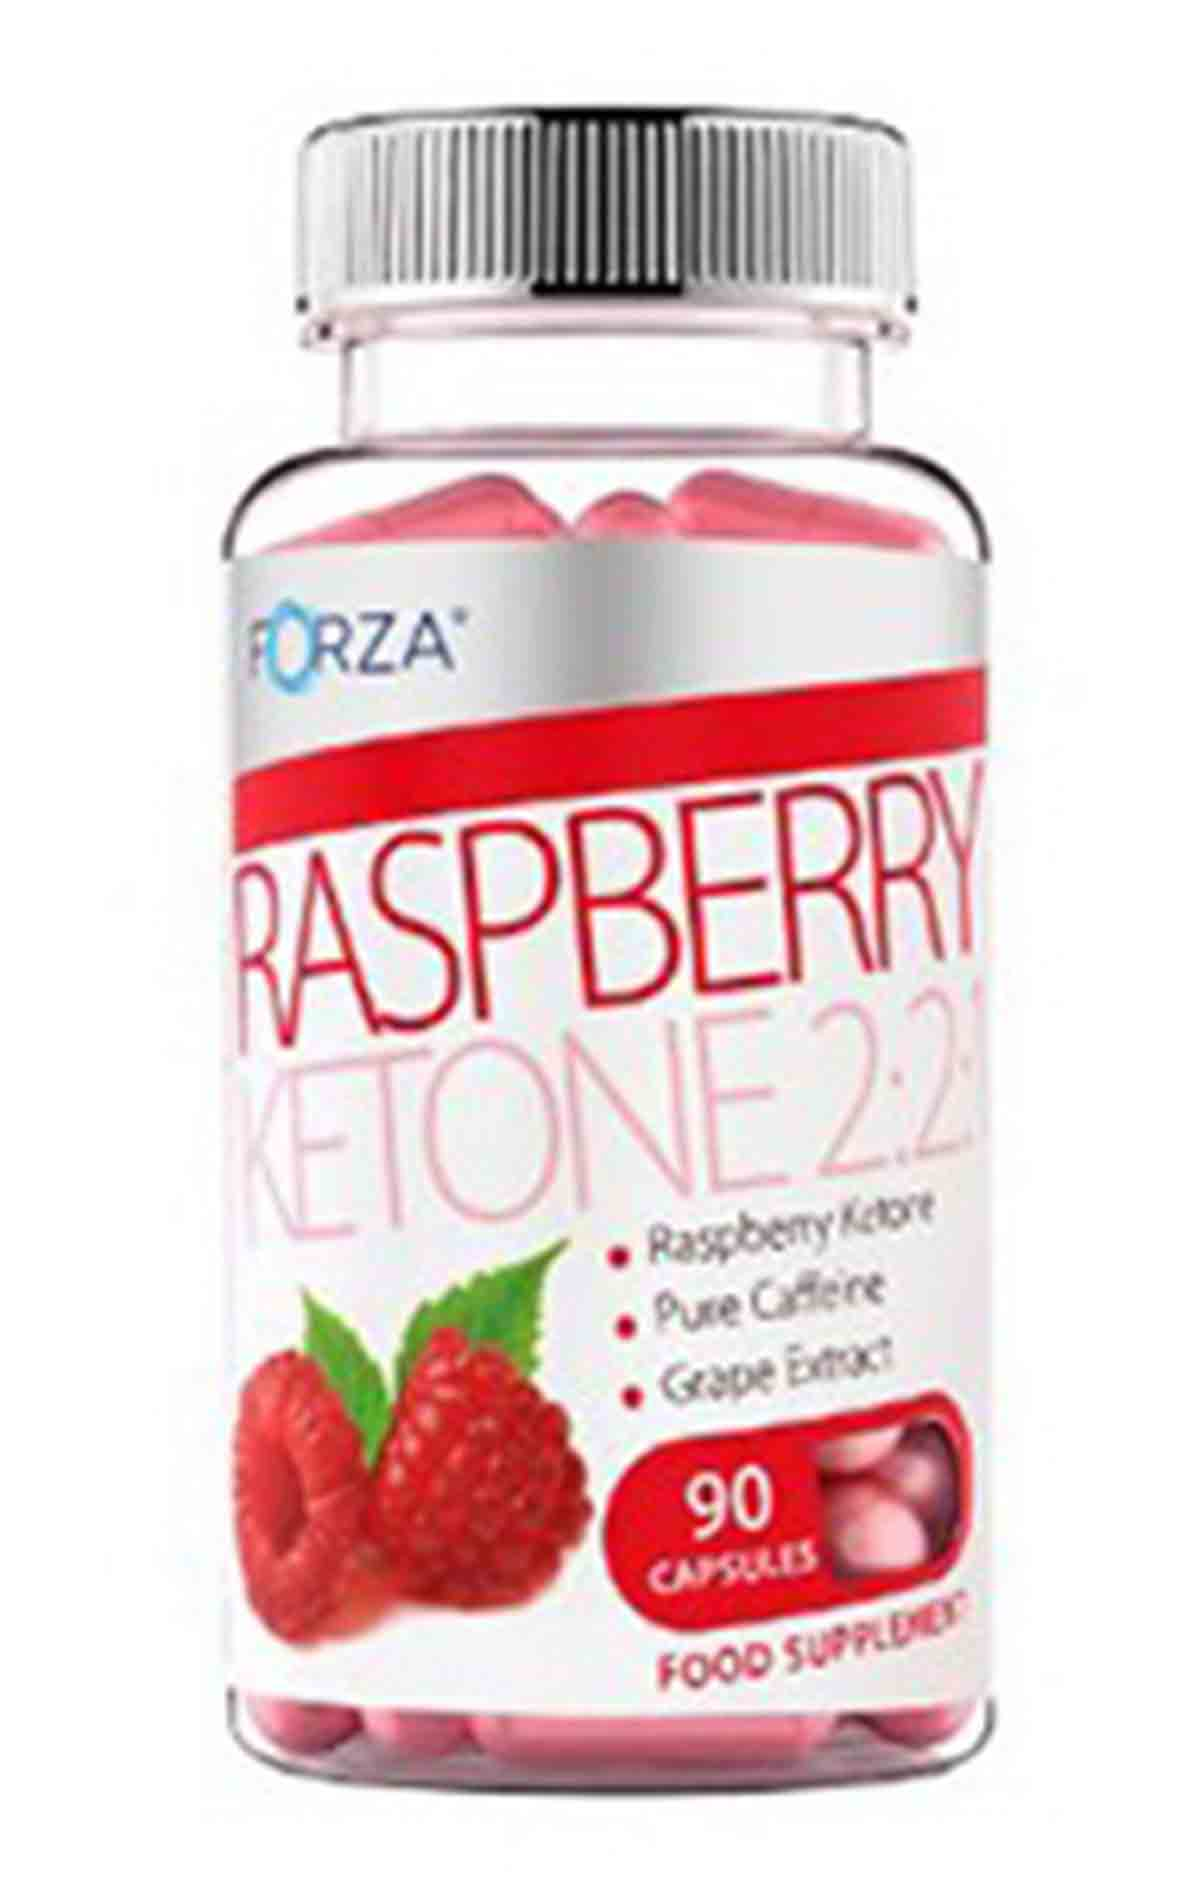 Forza Raspberry Ketone with Collagen